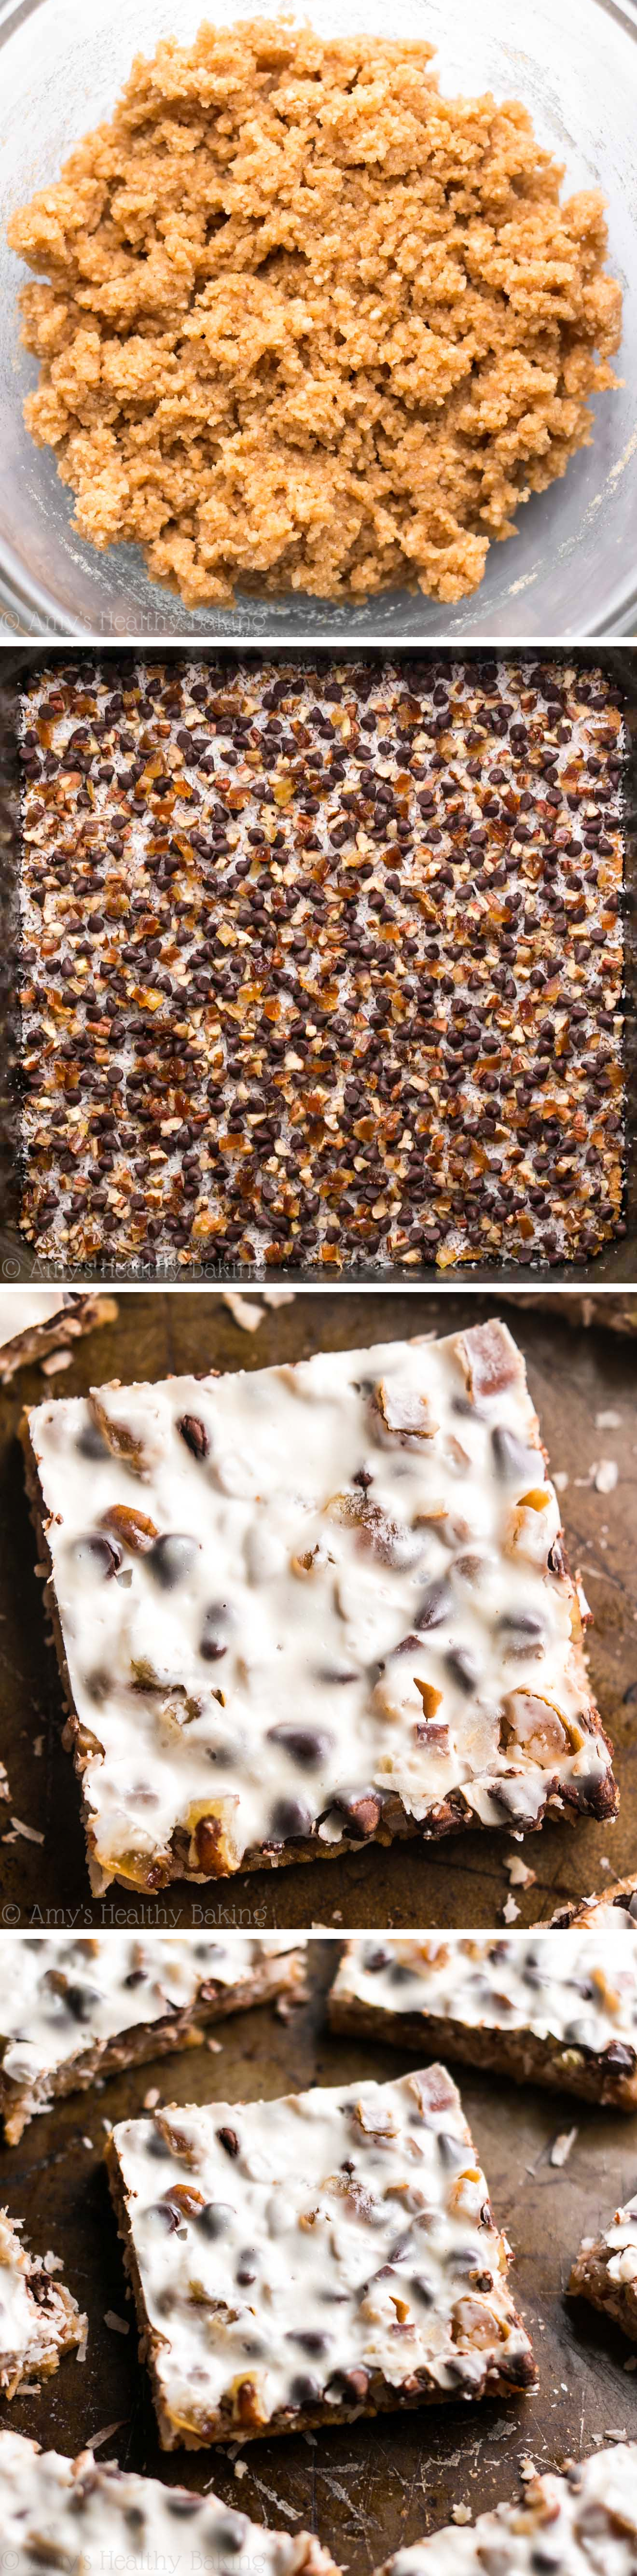 Skinny Caramel Seven Layer Bars – just 84 calories!! With a few healthy swaps, these magic bars have all of the decadence but NONE of the guilt! They don't taste healthy at all!